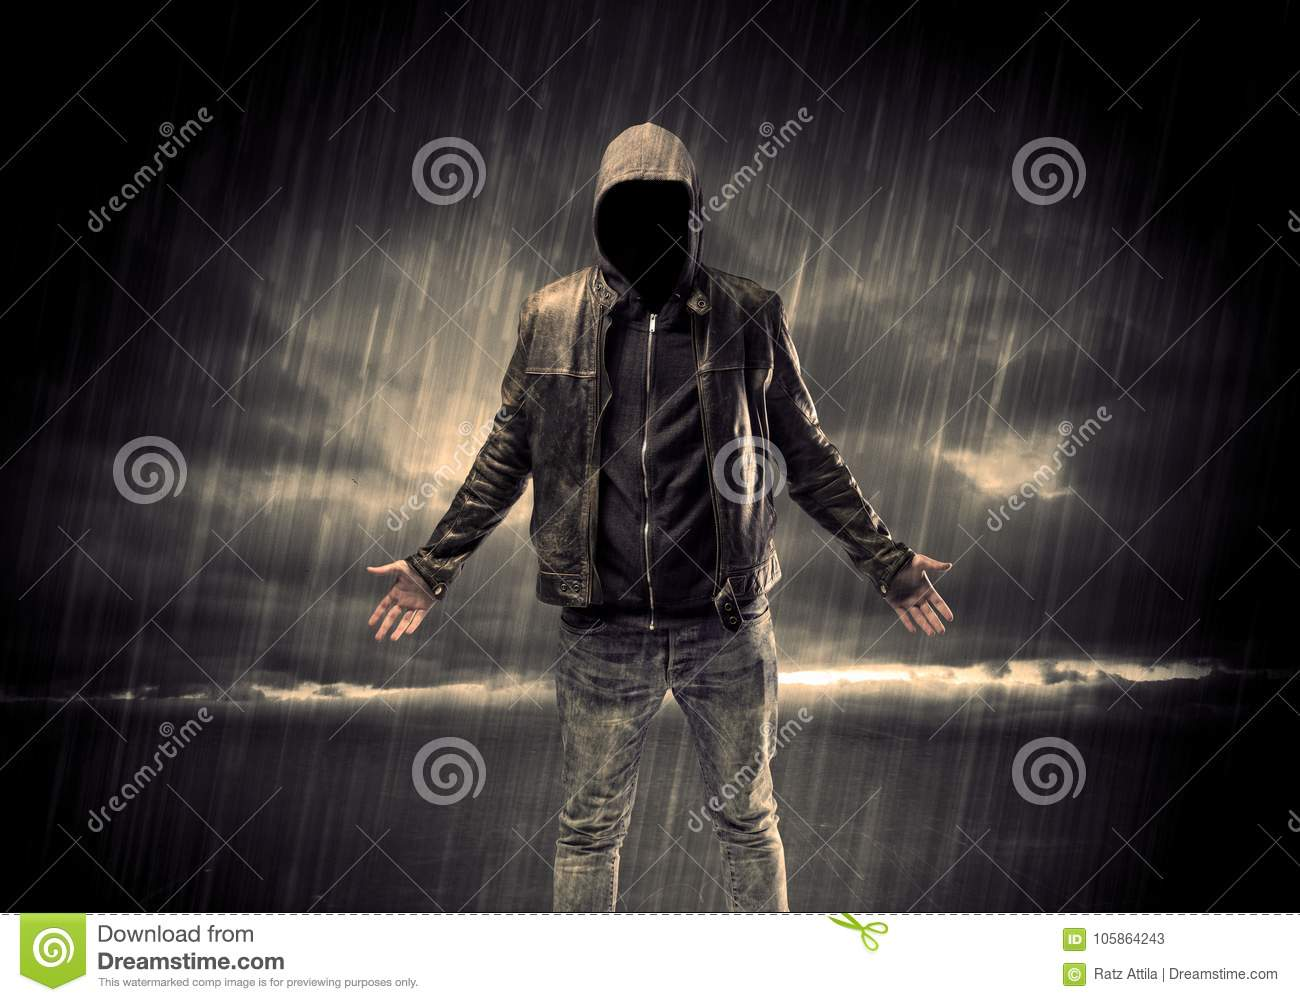 2 301 Unrecognizable Hoodie Photos Free Royalty Free Stock Photos From Dreamstime [ 1002 x 1300 Pixel ]